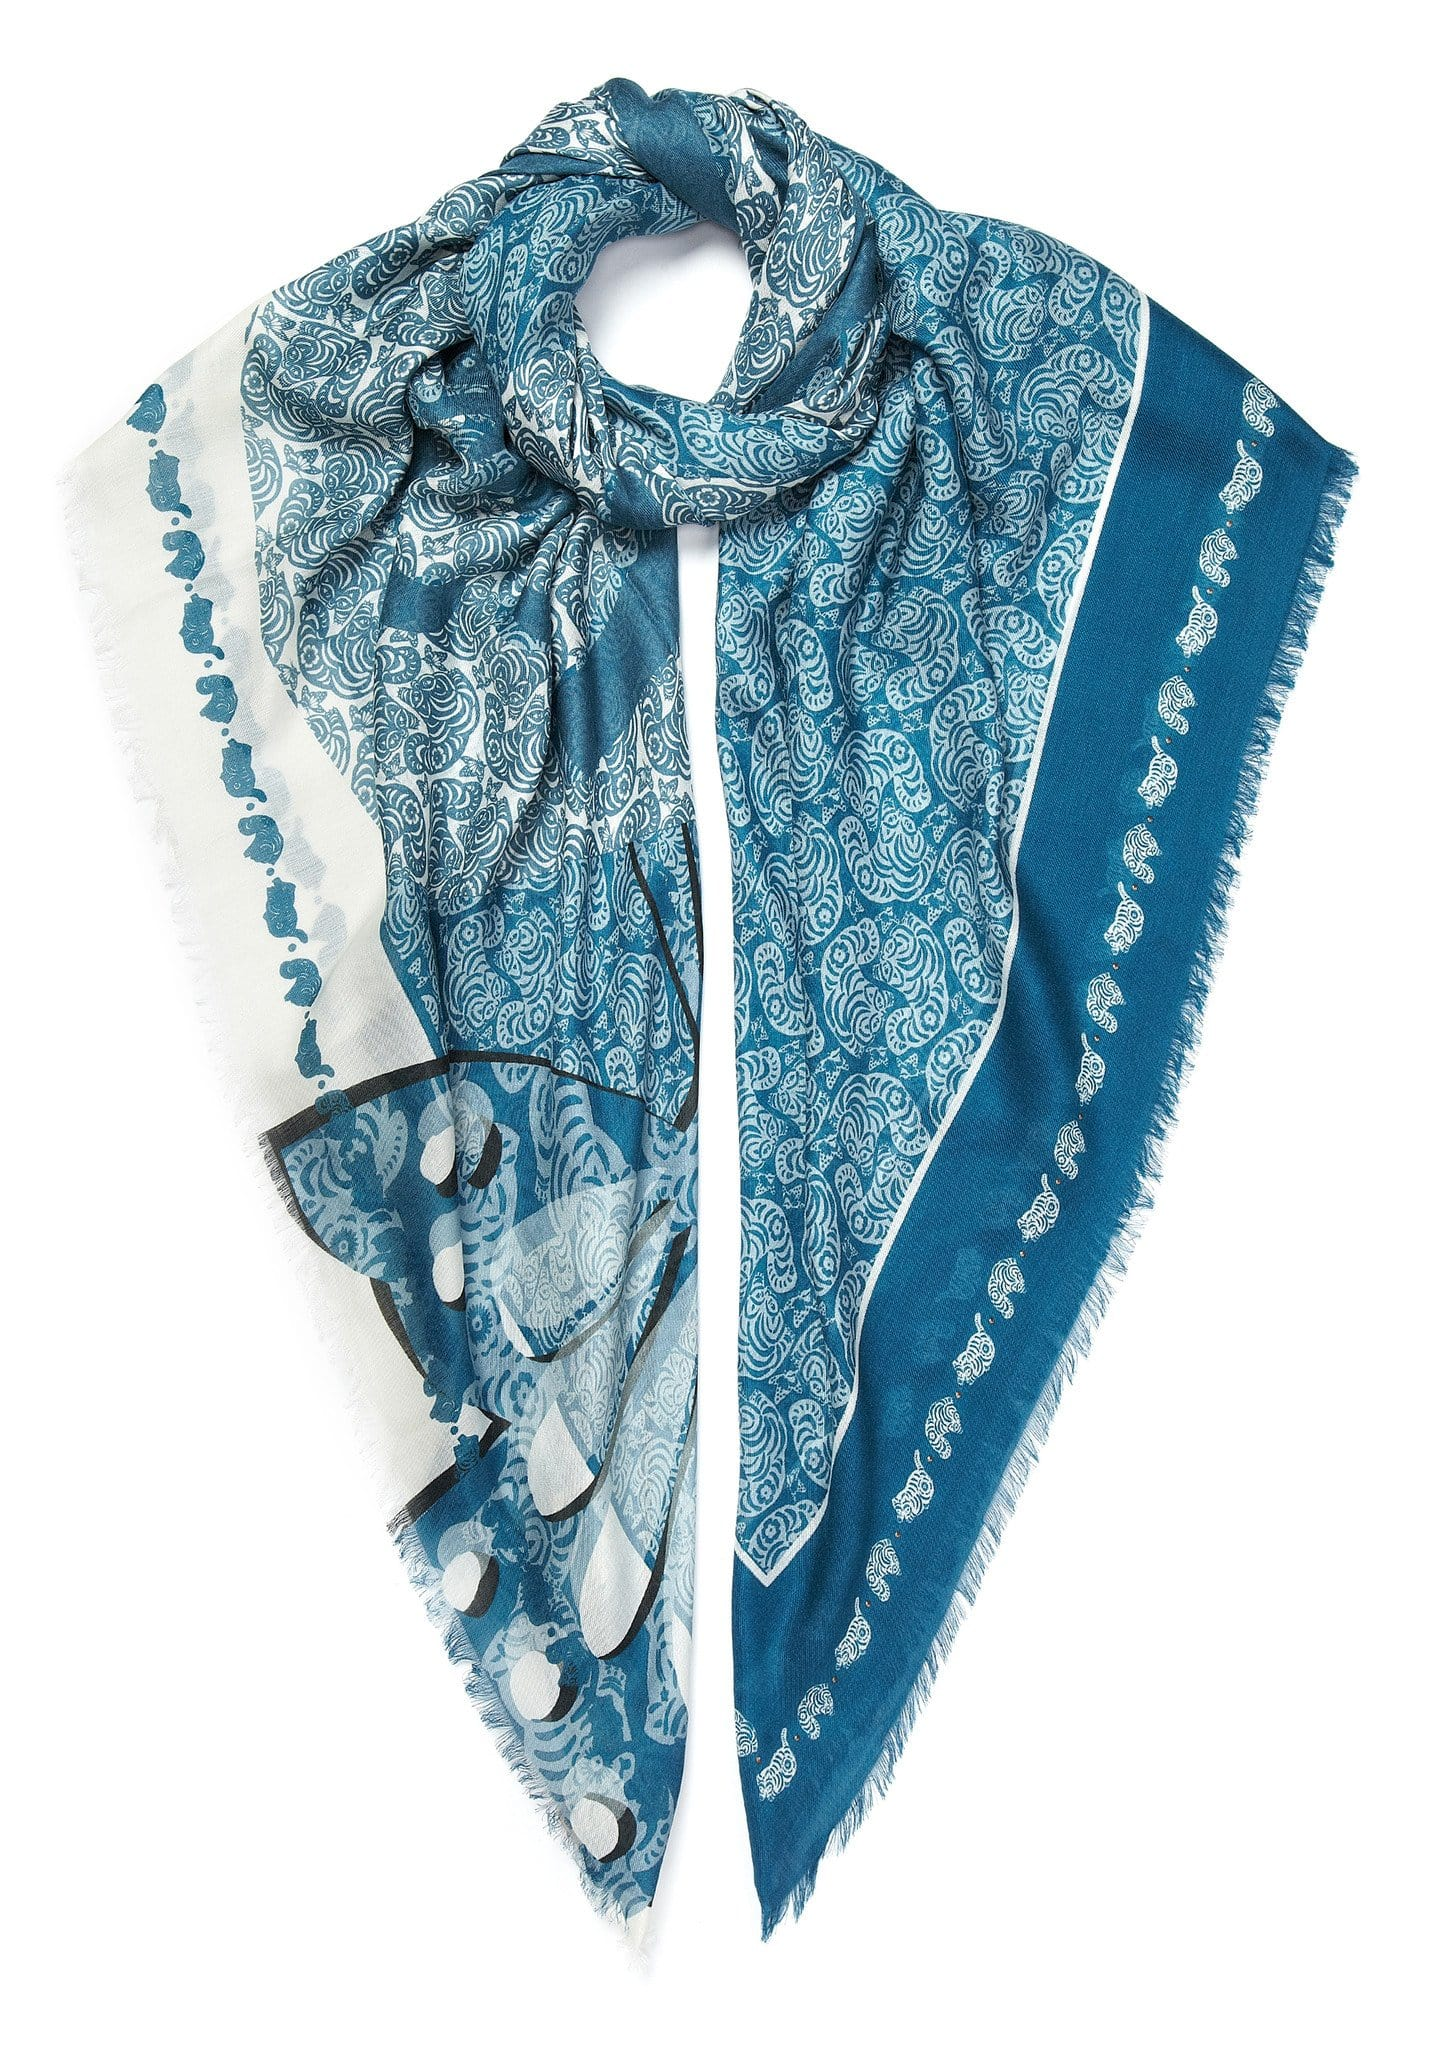 Vassilisa: Cat print scarf blue white | Accessories > Scarves,Accessories -  Hiphunters Shop